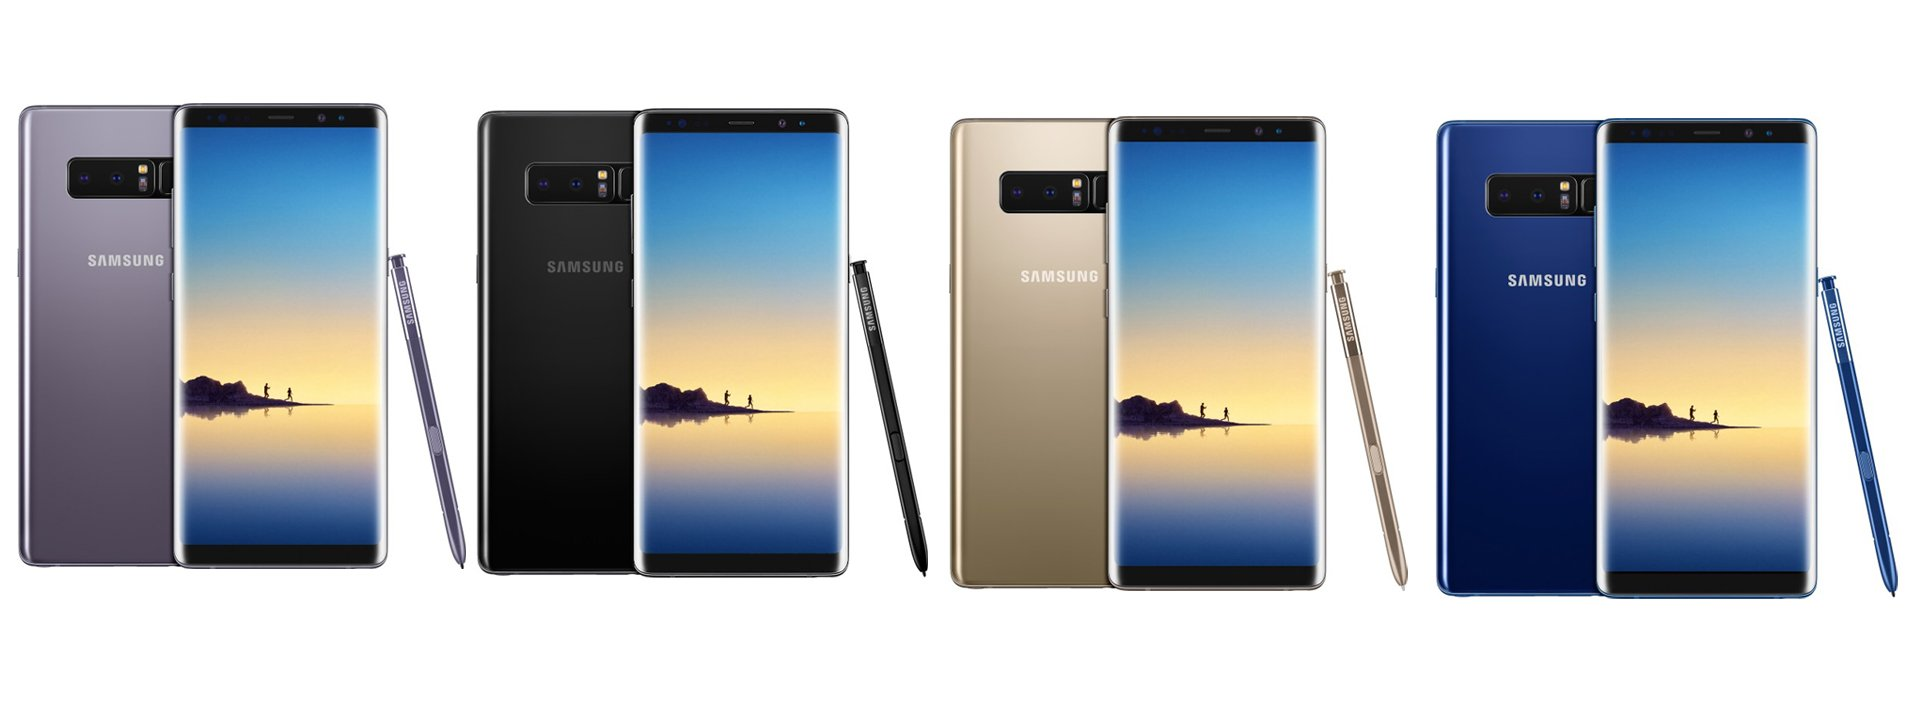 samsung galaxy note 8 specs review release date phonesdata. Black Bedroom Furniture Sets. Home Design Ideas